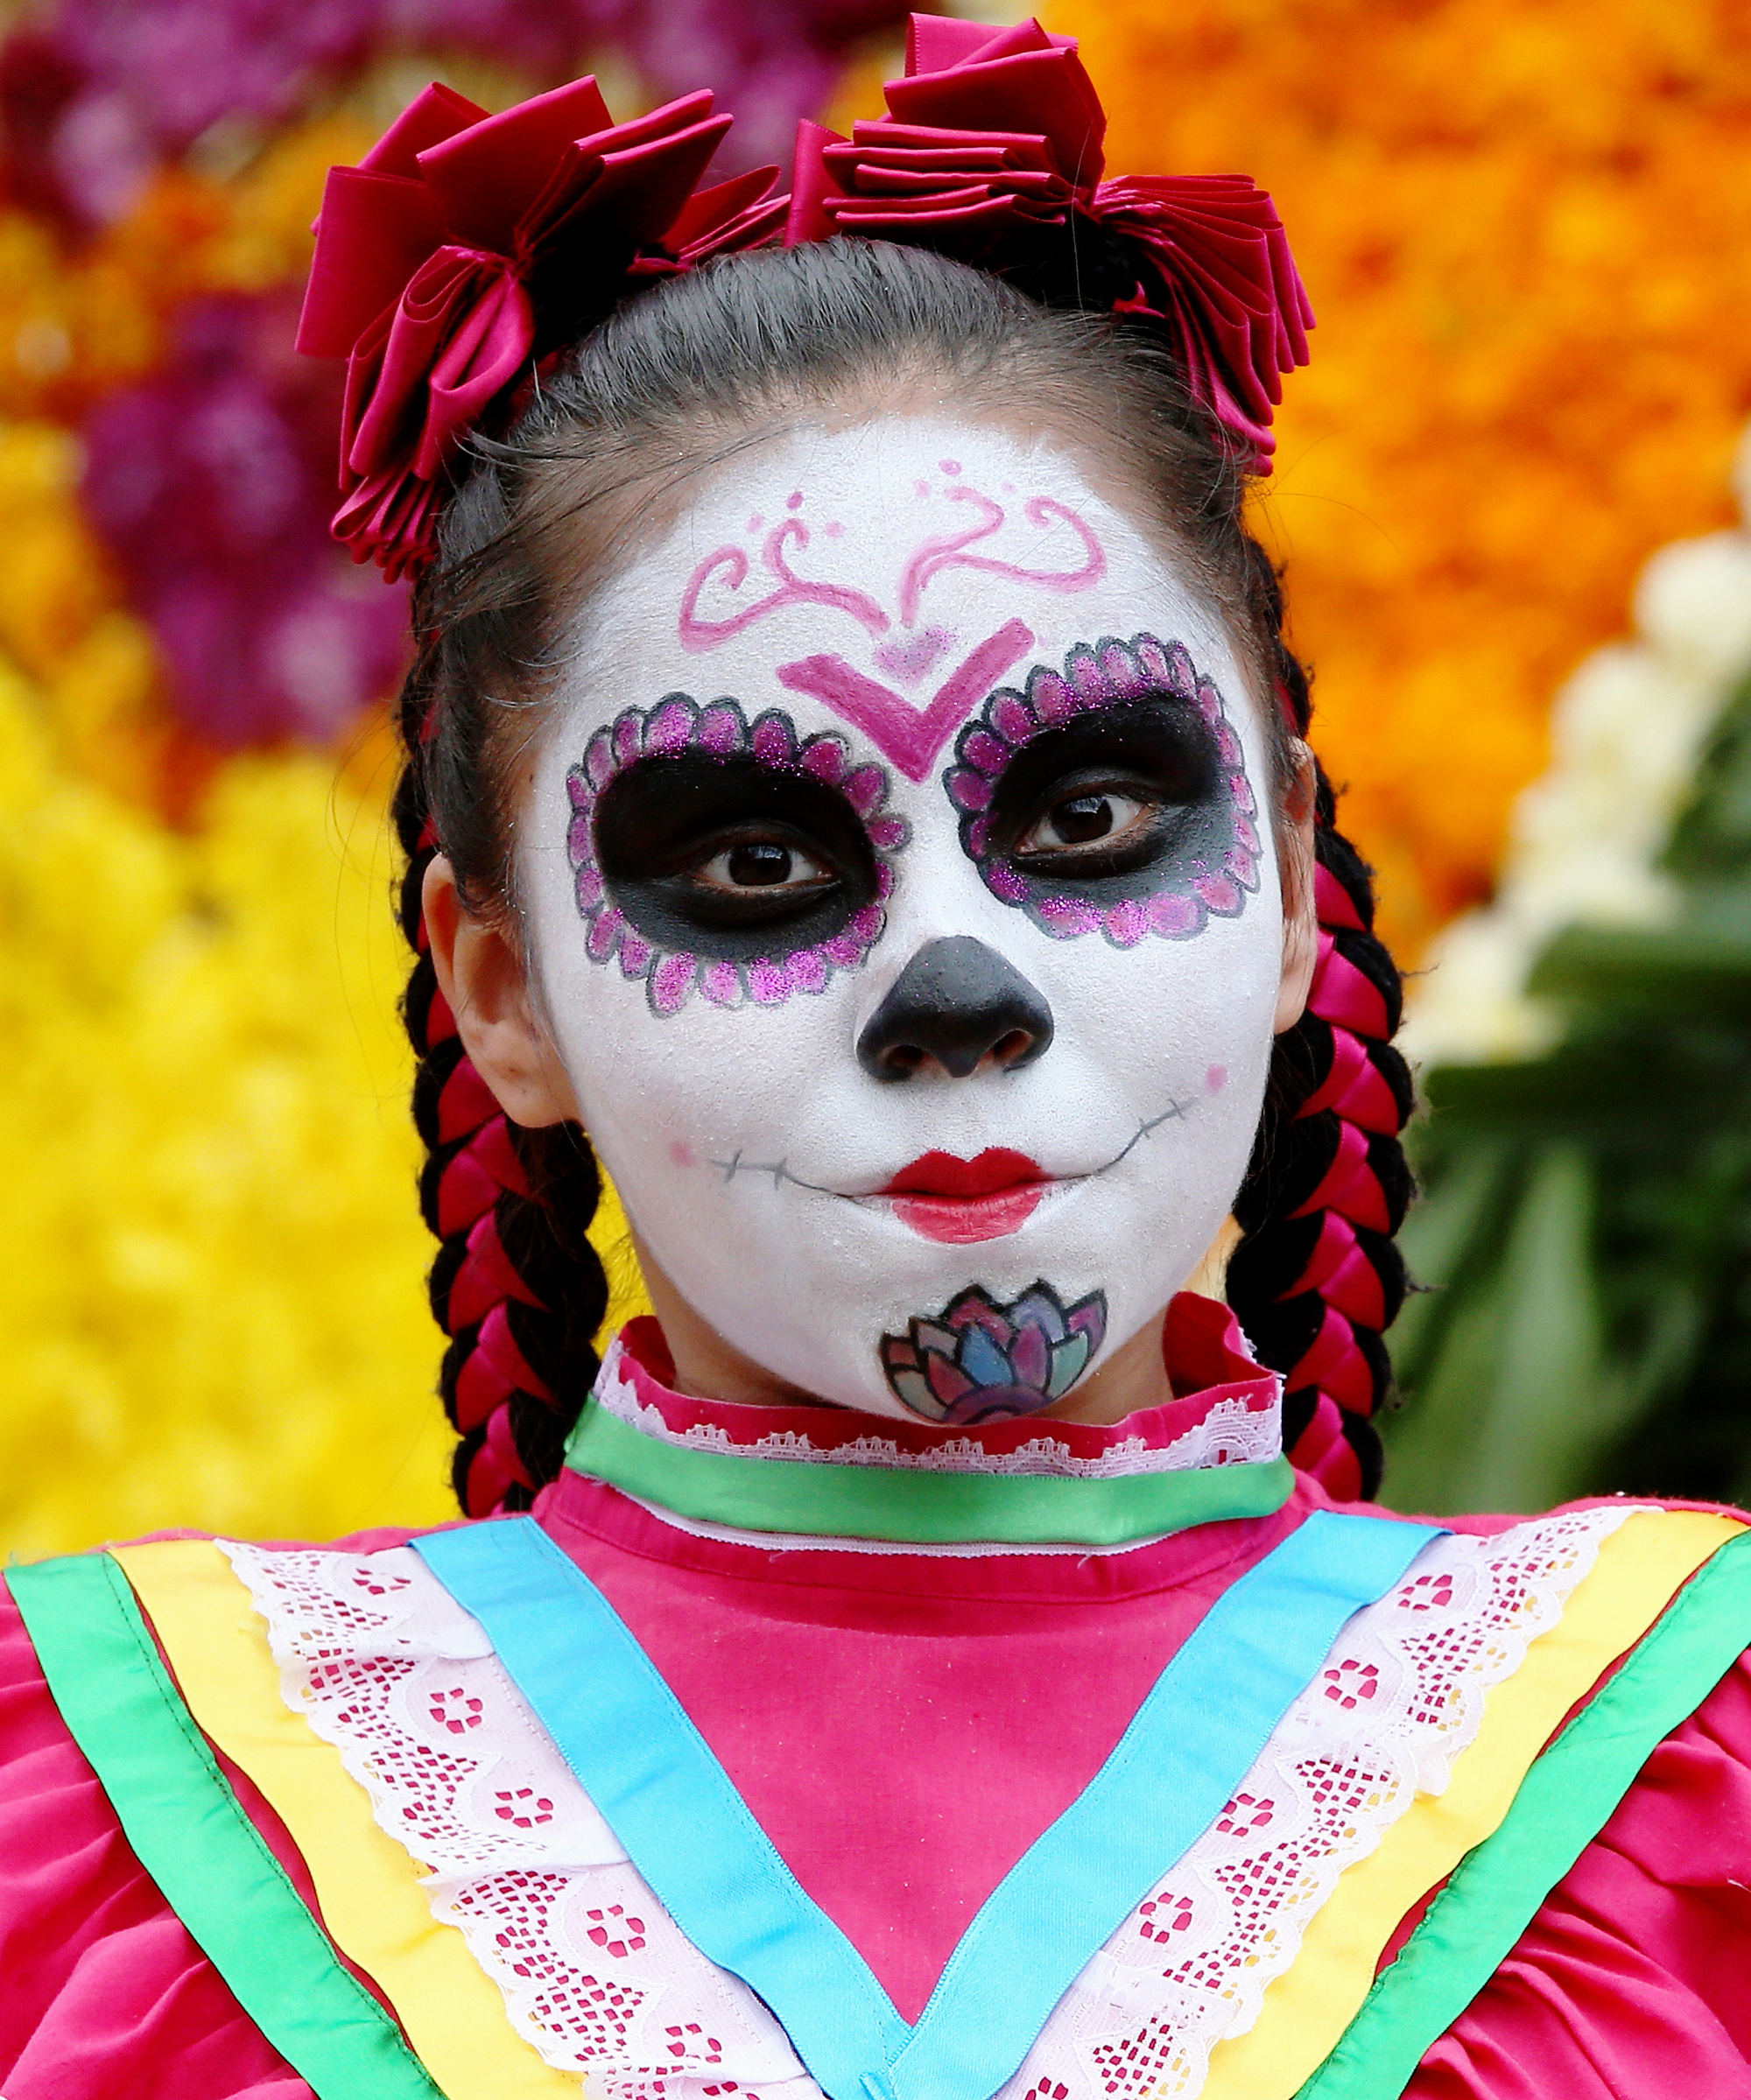 His second appearance in Mexican culture is a much closer version of our modern Calavera Catrina.